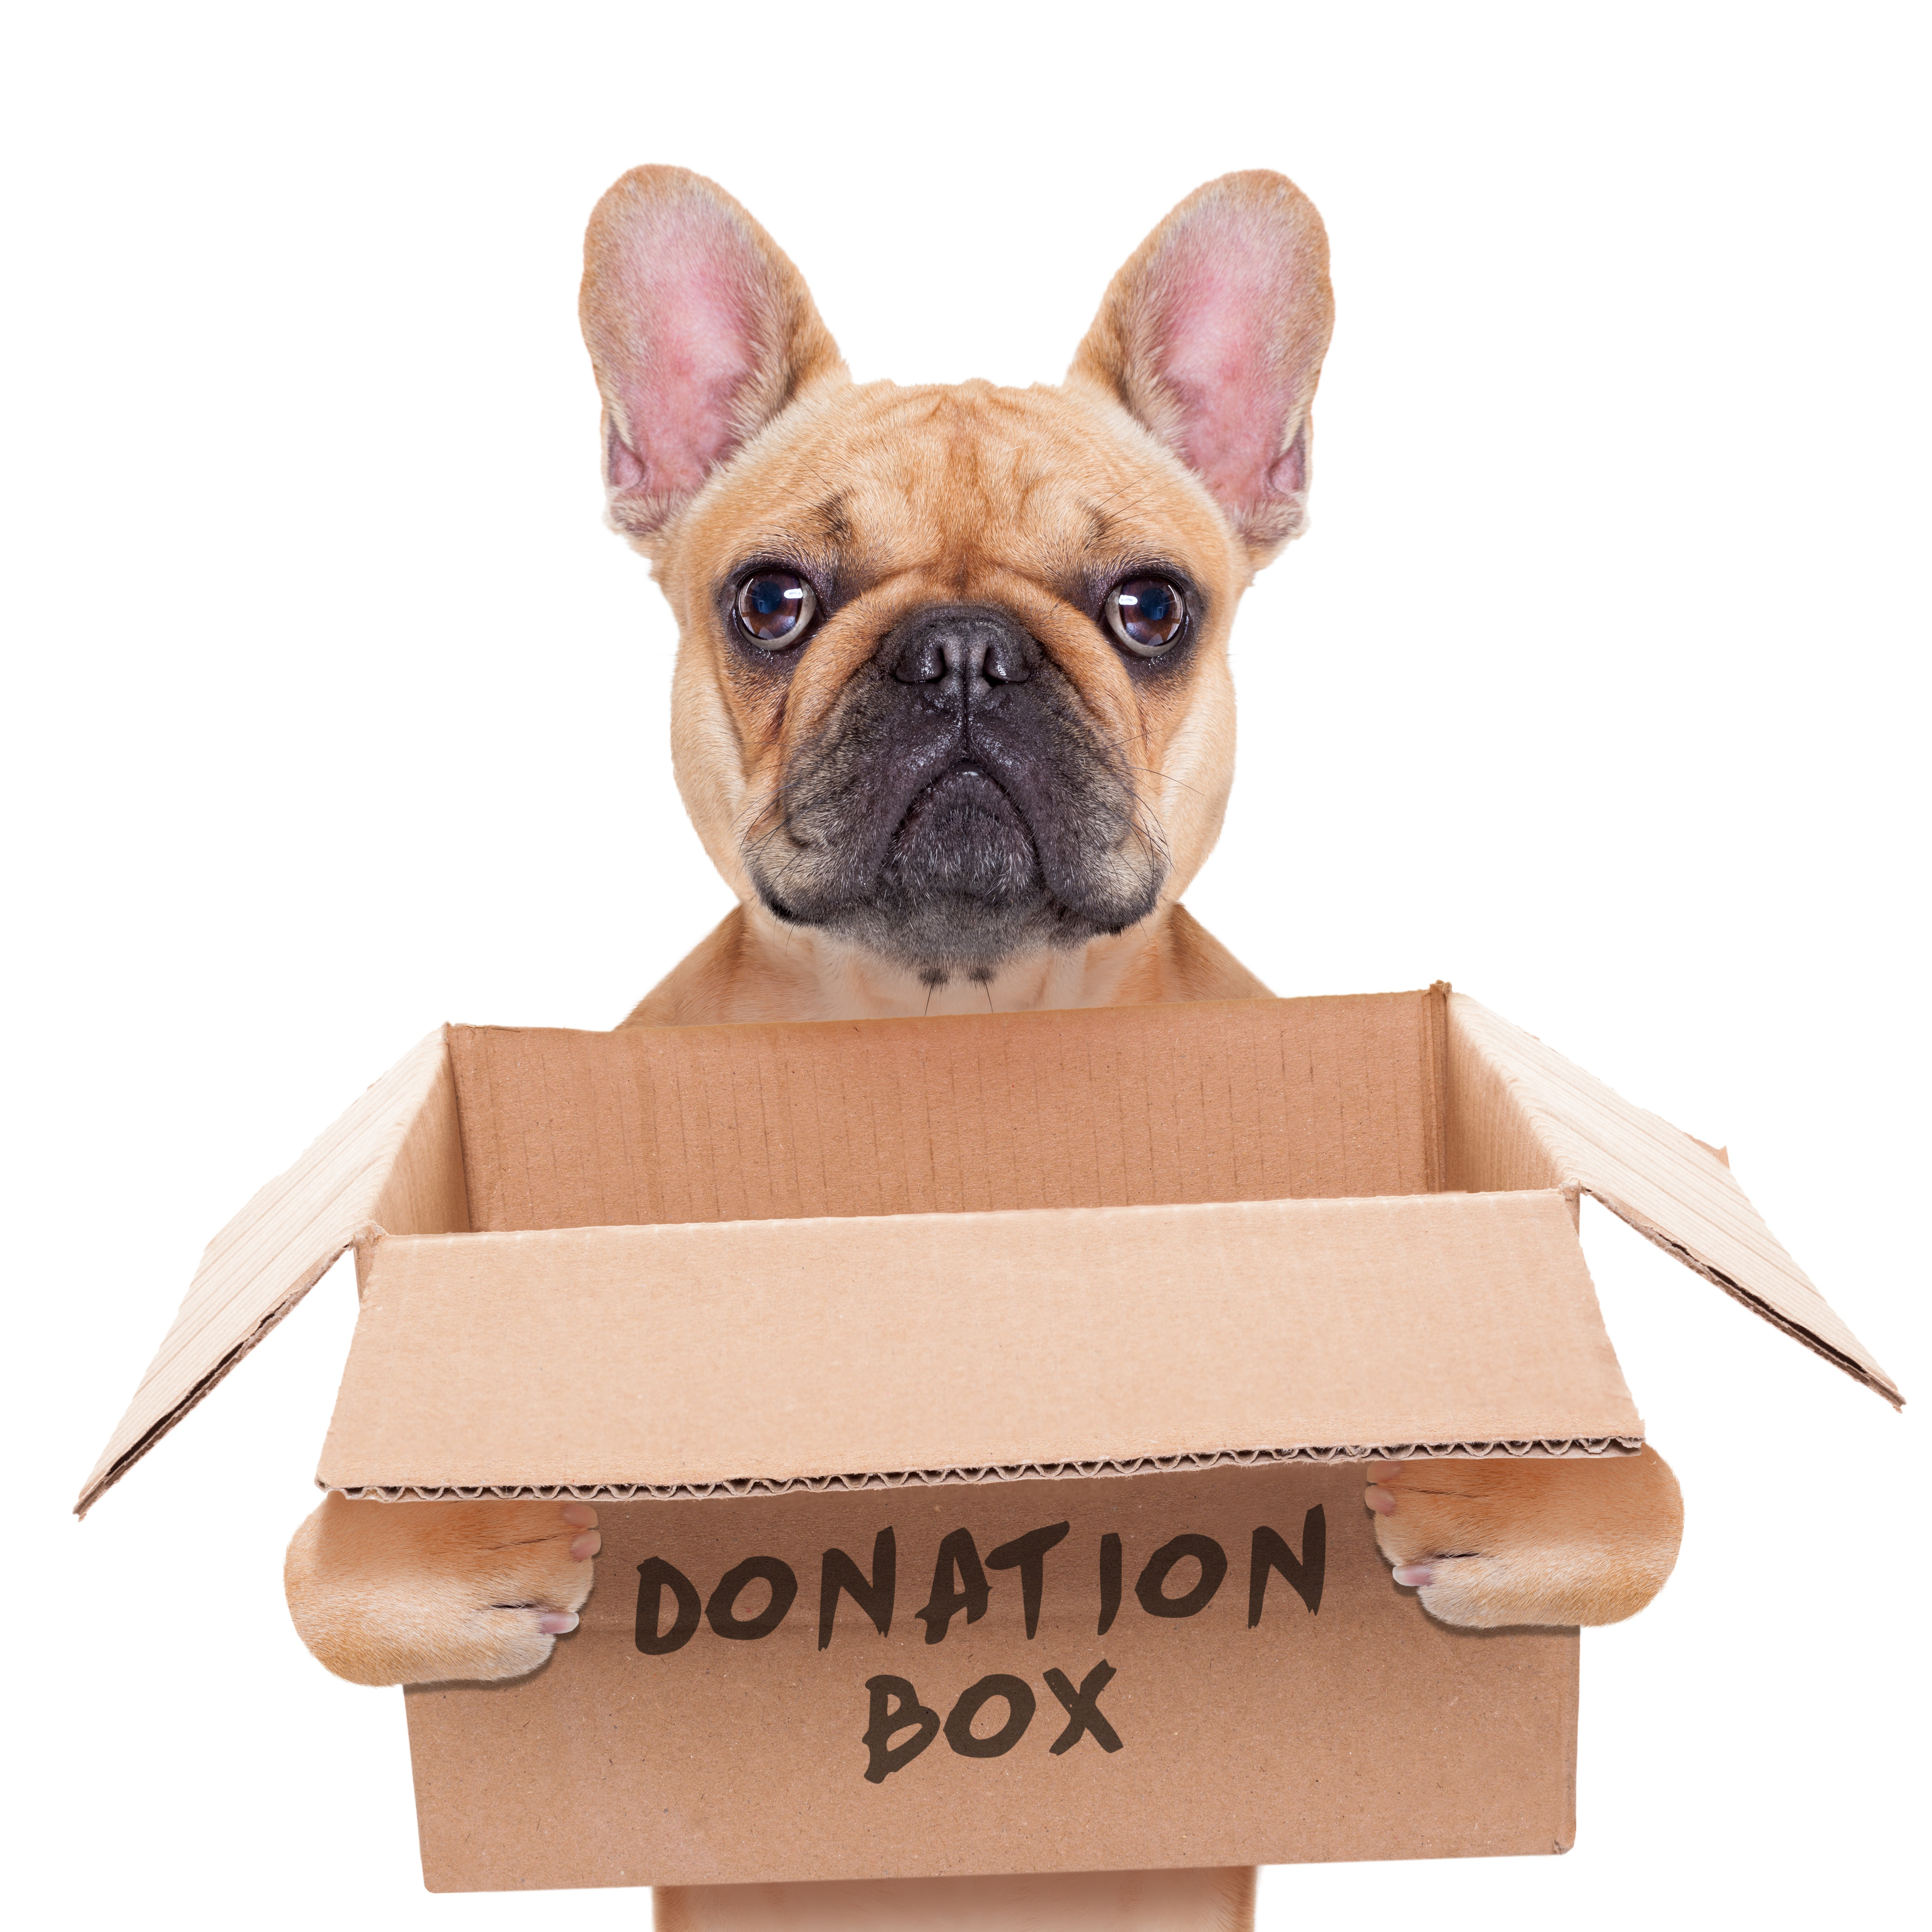 Animal charity food and items donations